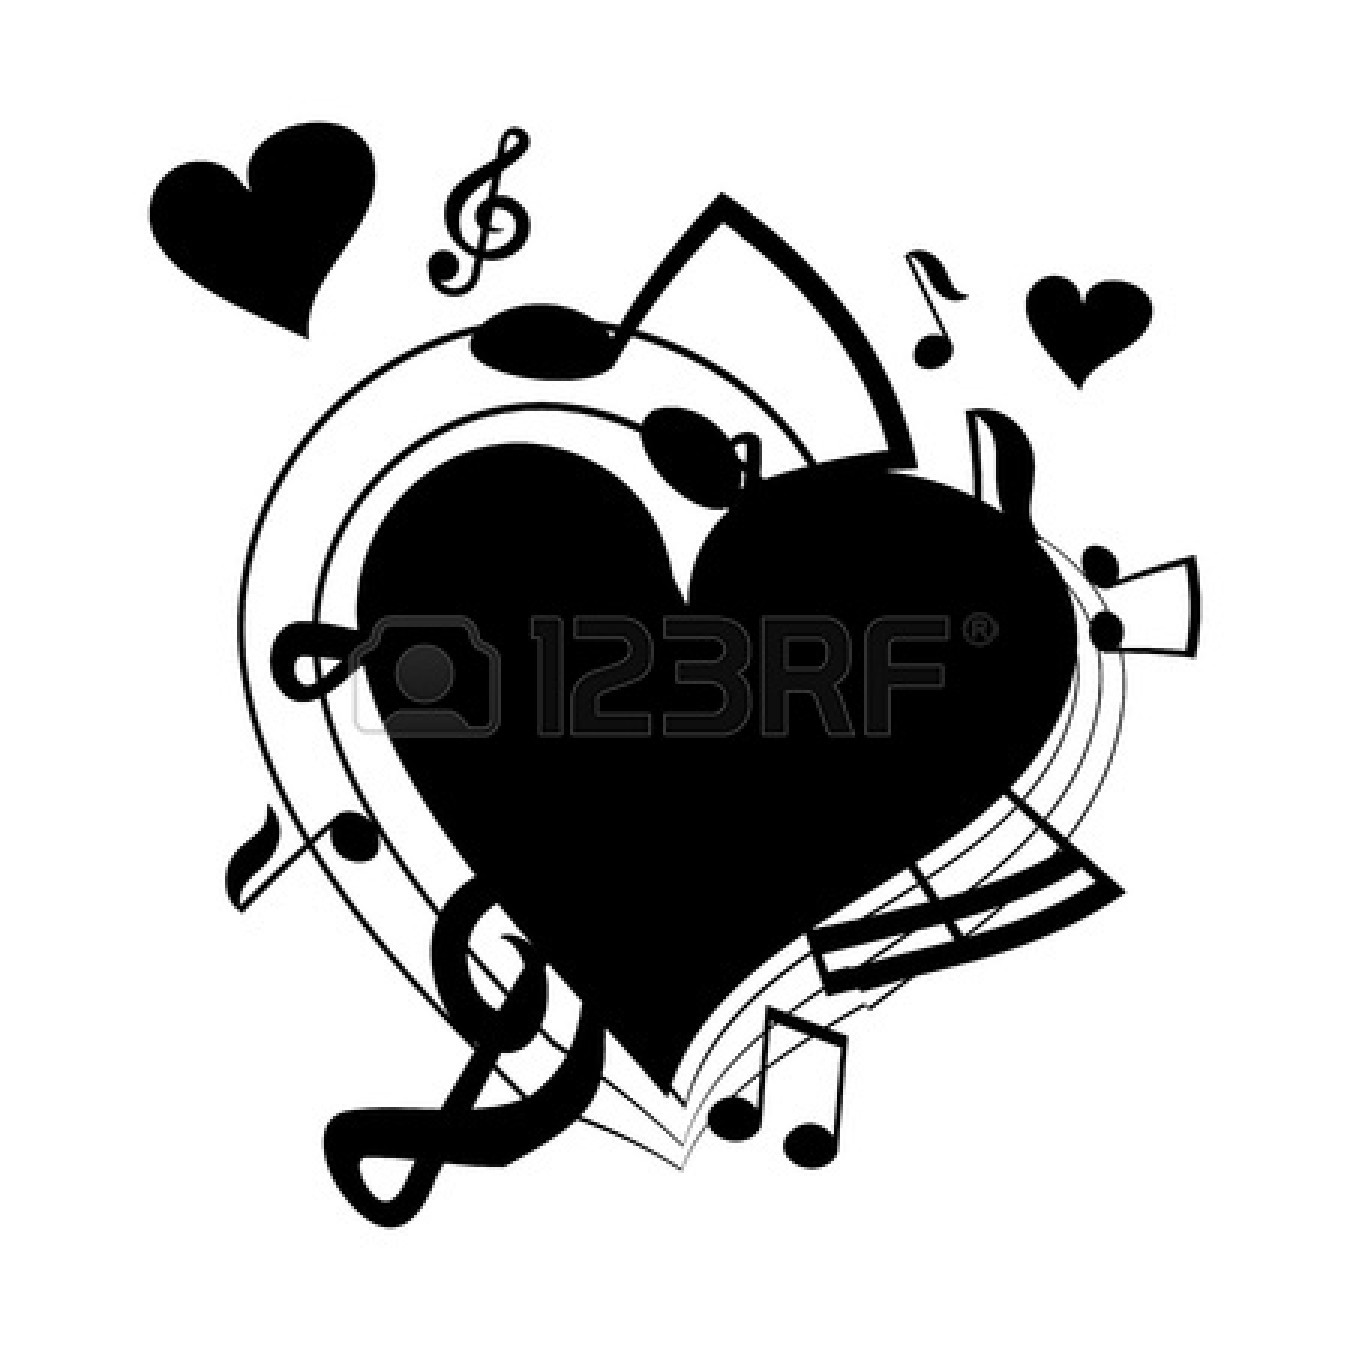 Music simbols in a heart shape clipart image free library Heart Shaped Music Notes | Clipart Panda - Free Clipart Images image free library